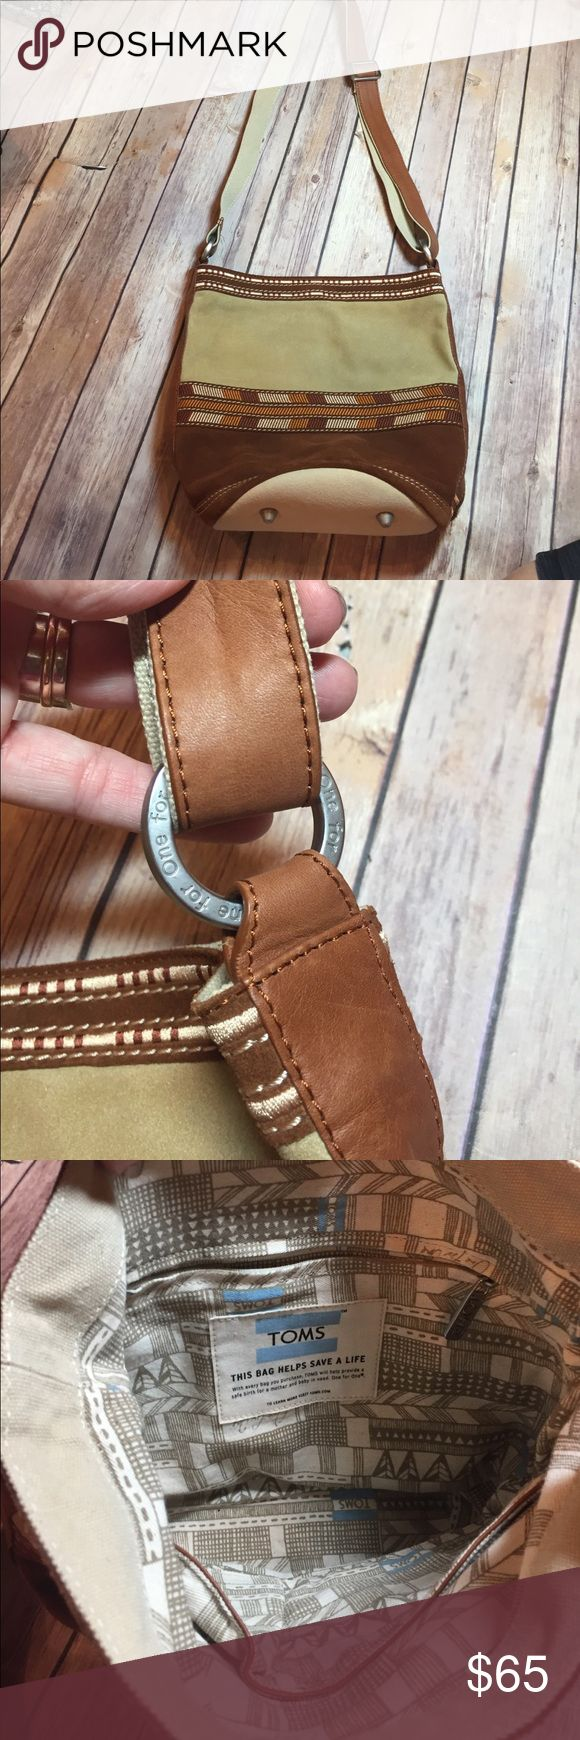 """New Toms Bag New without tags Suede and canvas Toms bag, beautiful hardware, Embroidered pattern and Suede, perfect condition 😍 adjustable strap for crossbody use. 10"""" wide on bottom, 12"""" wide at top, 23"""" strap, 10"""" tall. TOMS Bags"""